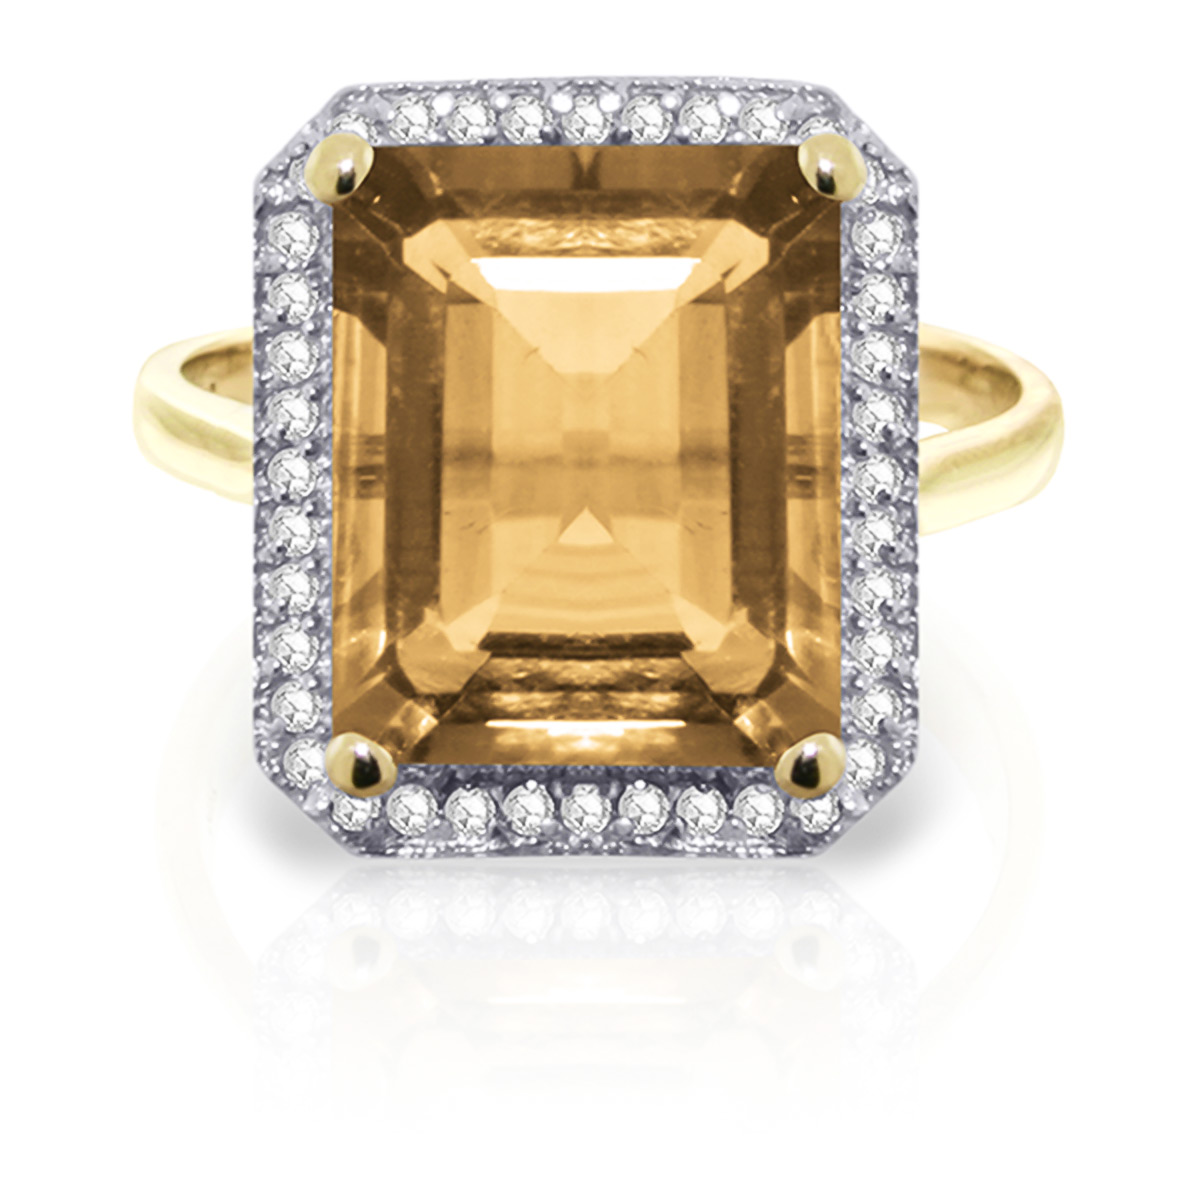 Citrine and Diamond Halo Ring 5.6ct in 9ct Gold